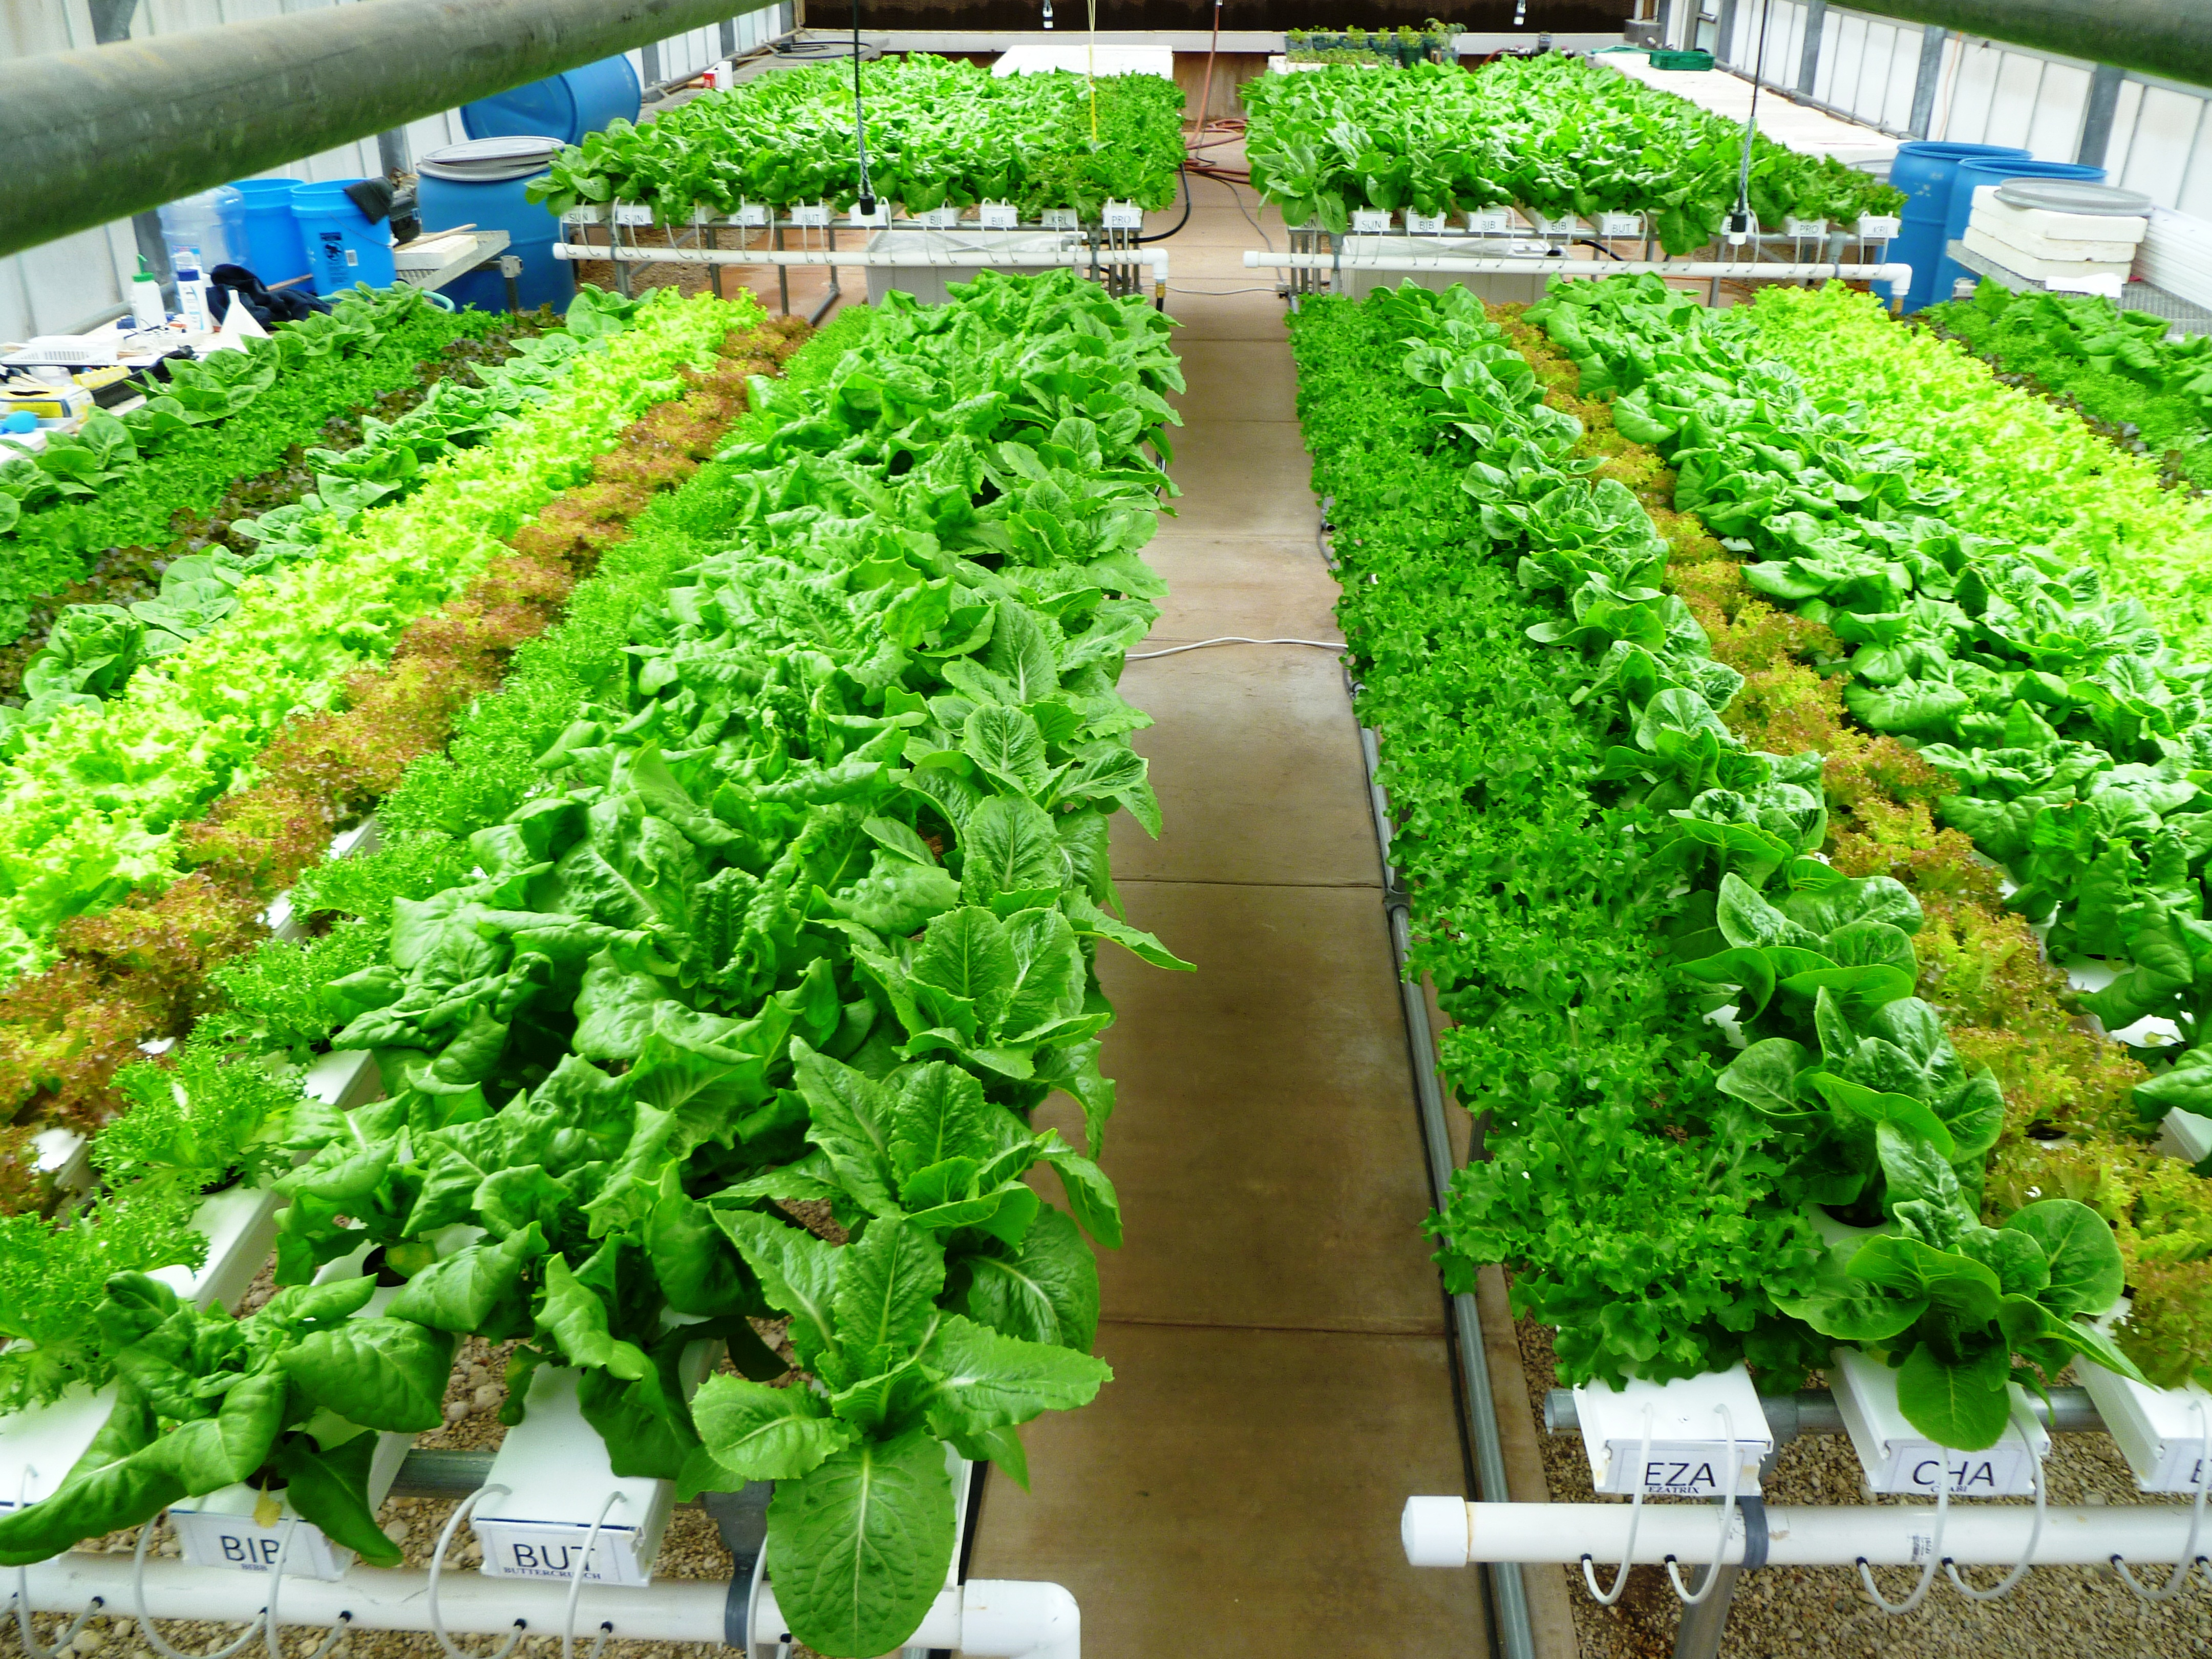 Growing High Value Lettuce With 85 To 90 Percent Water Savings